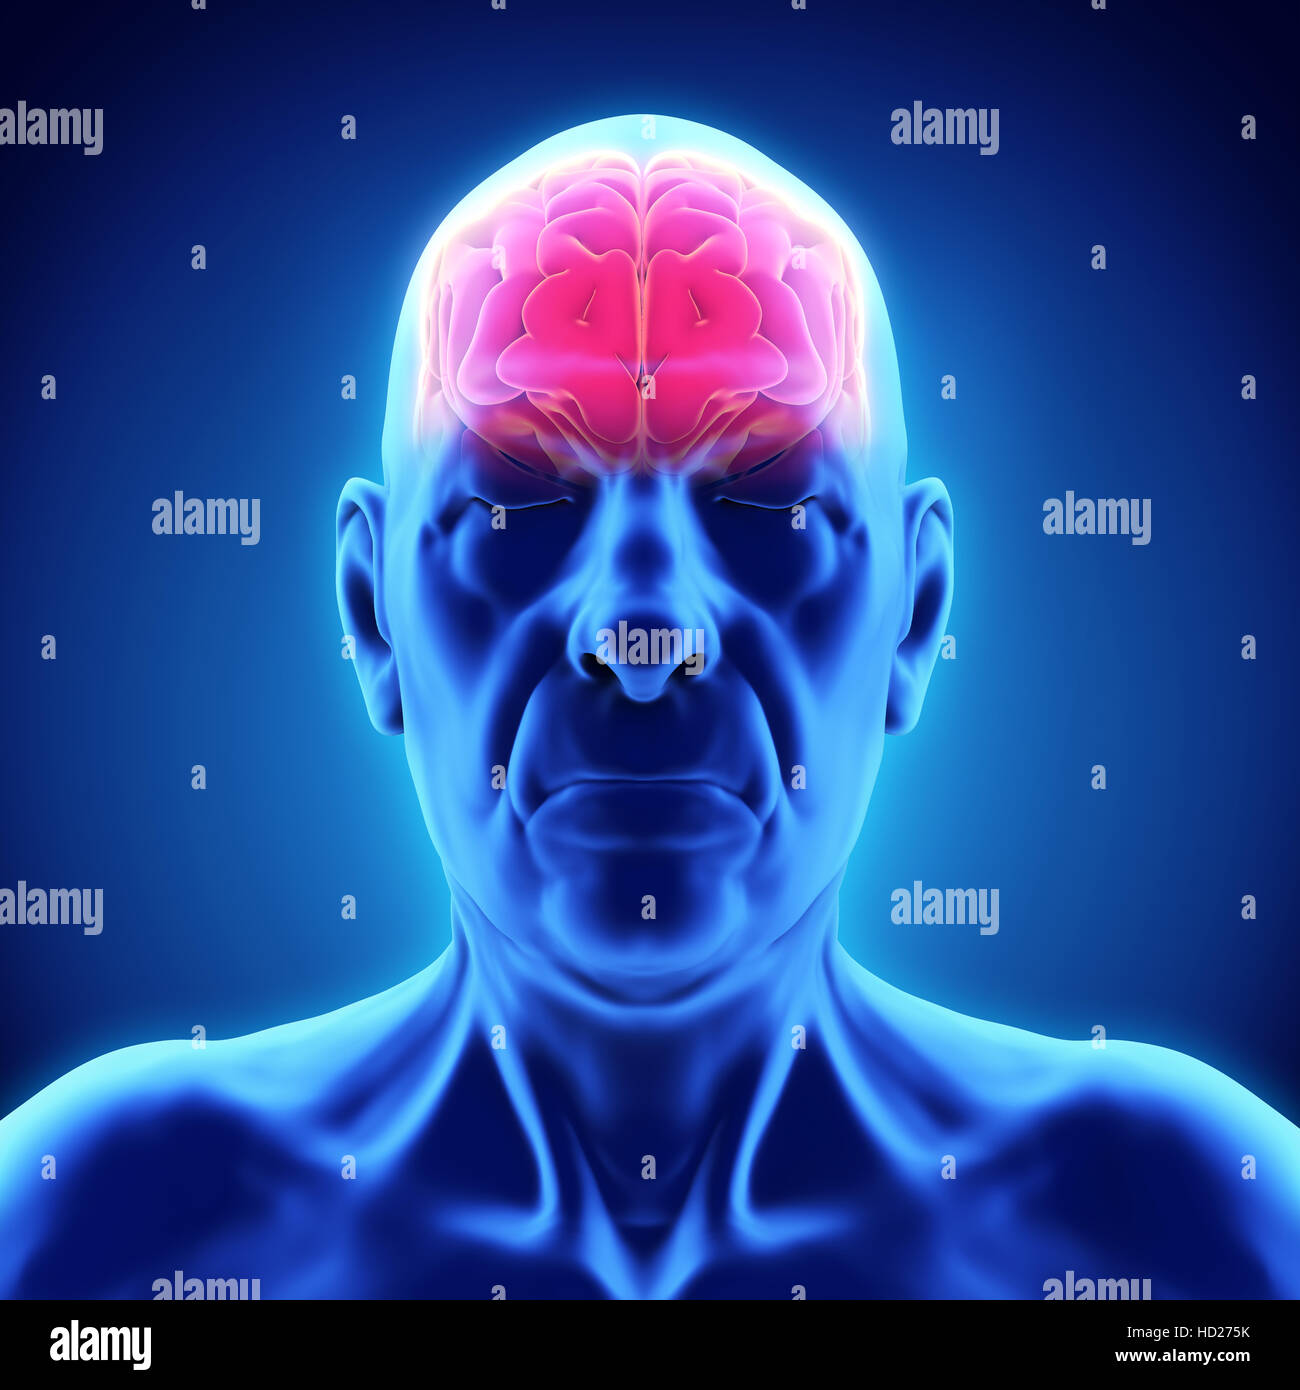 Brain Mri Dementia Stock Photos & Brain Mri Dementia Stock Images ...